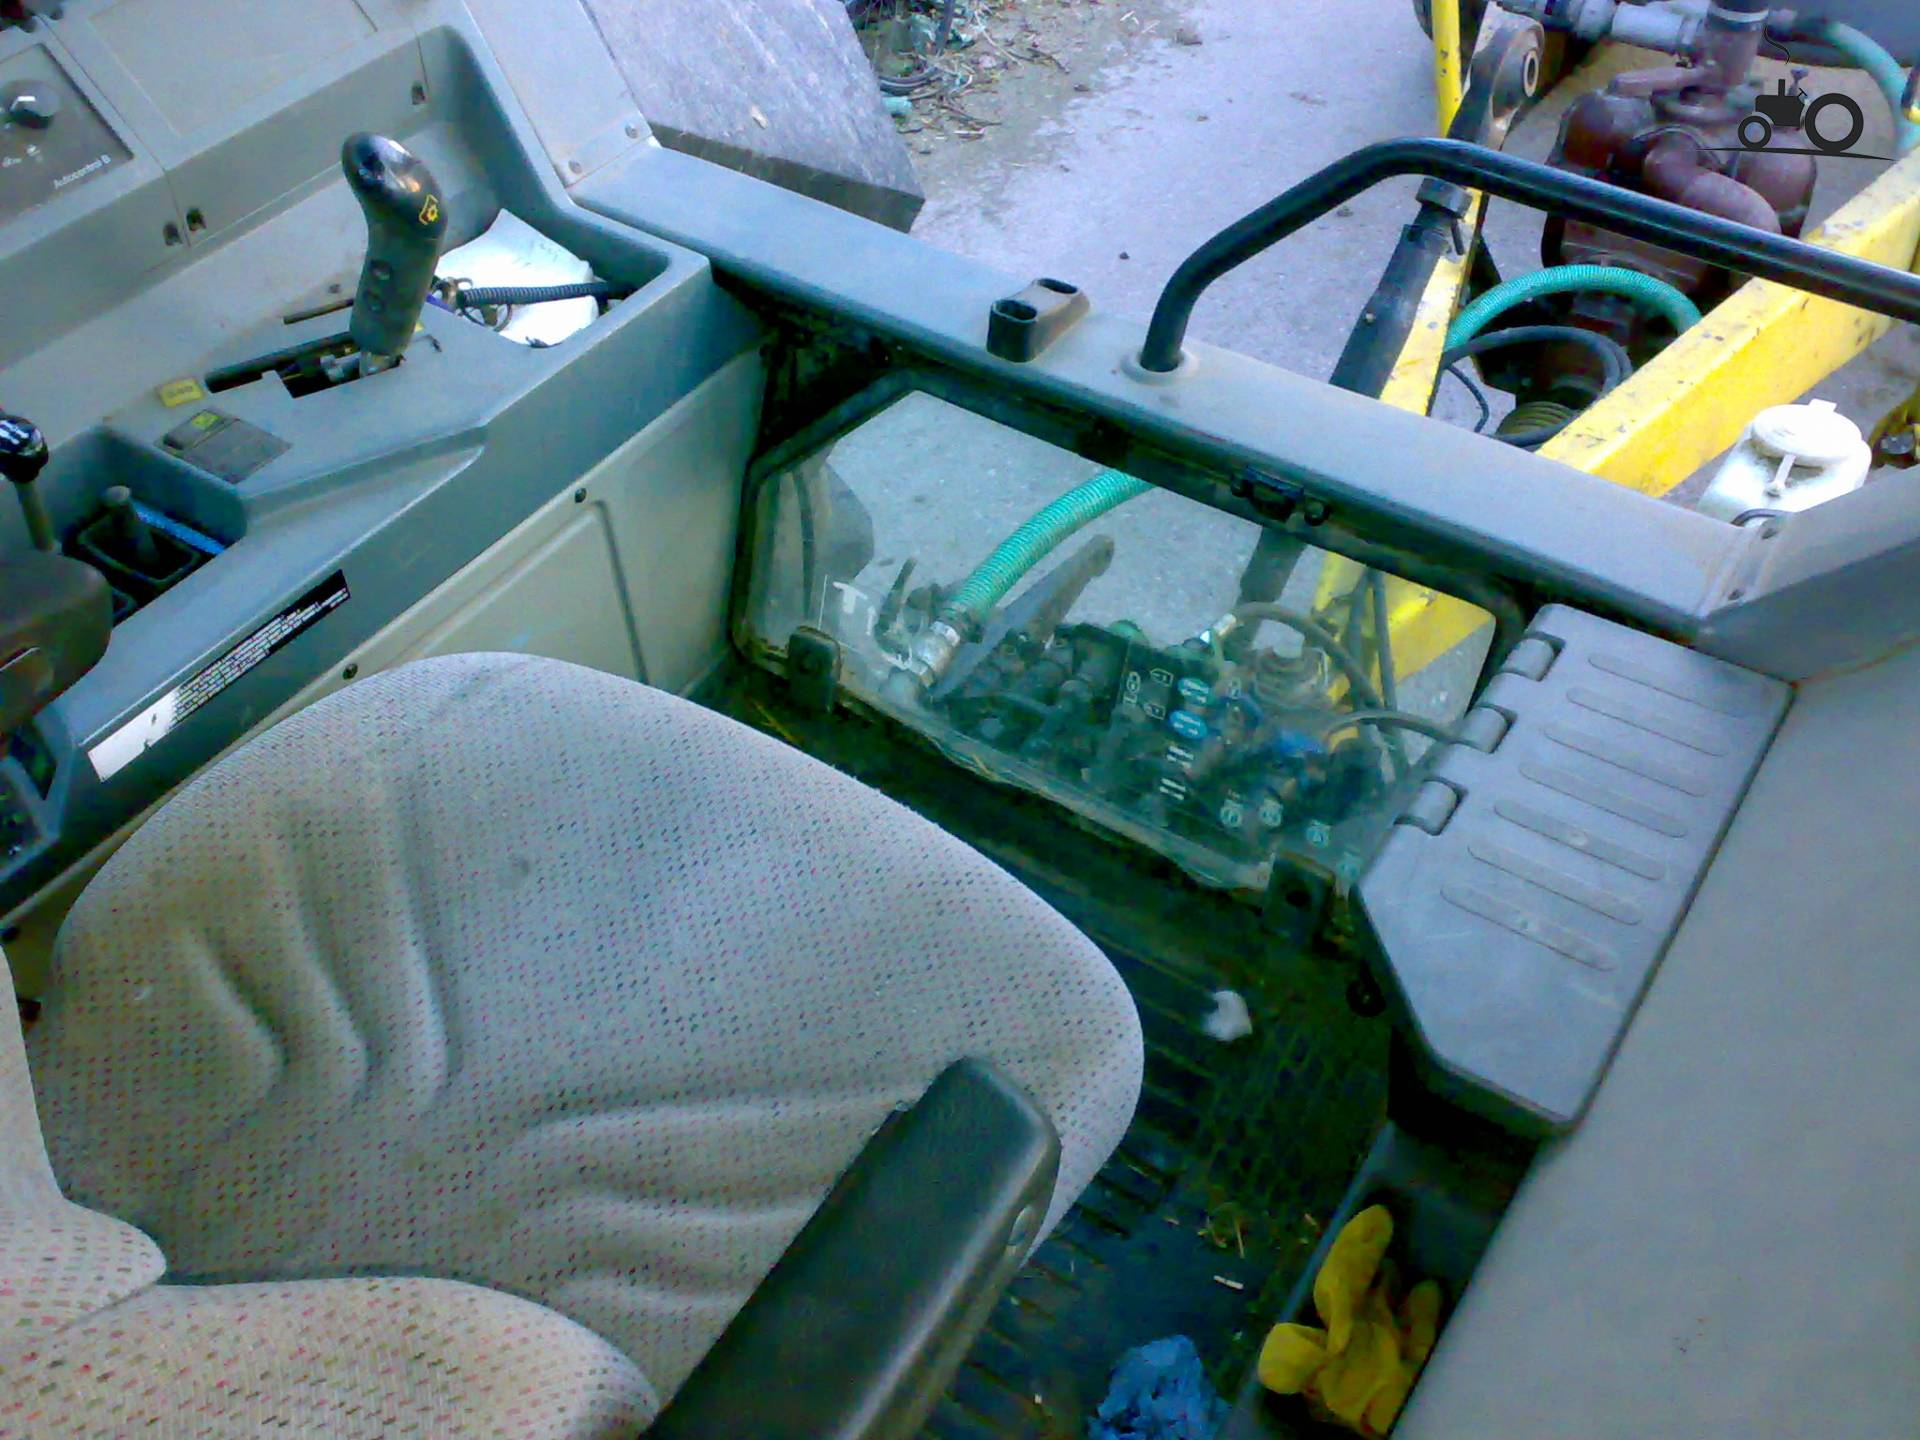 Valtra interieur foto 39 s pagina 5 for Interieur foto s